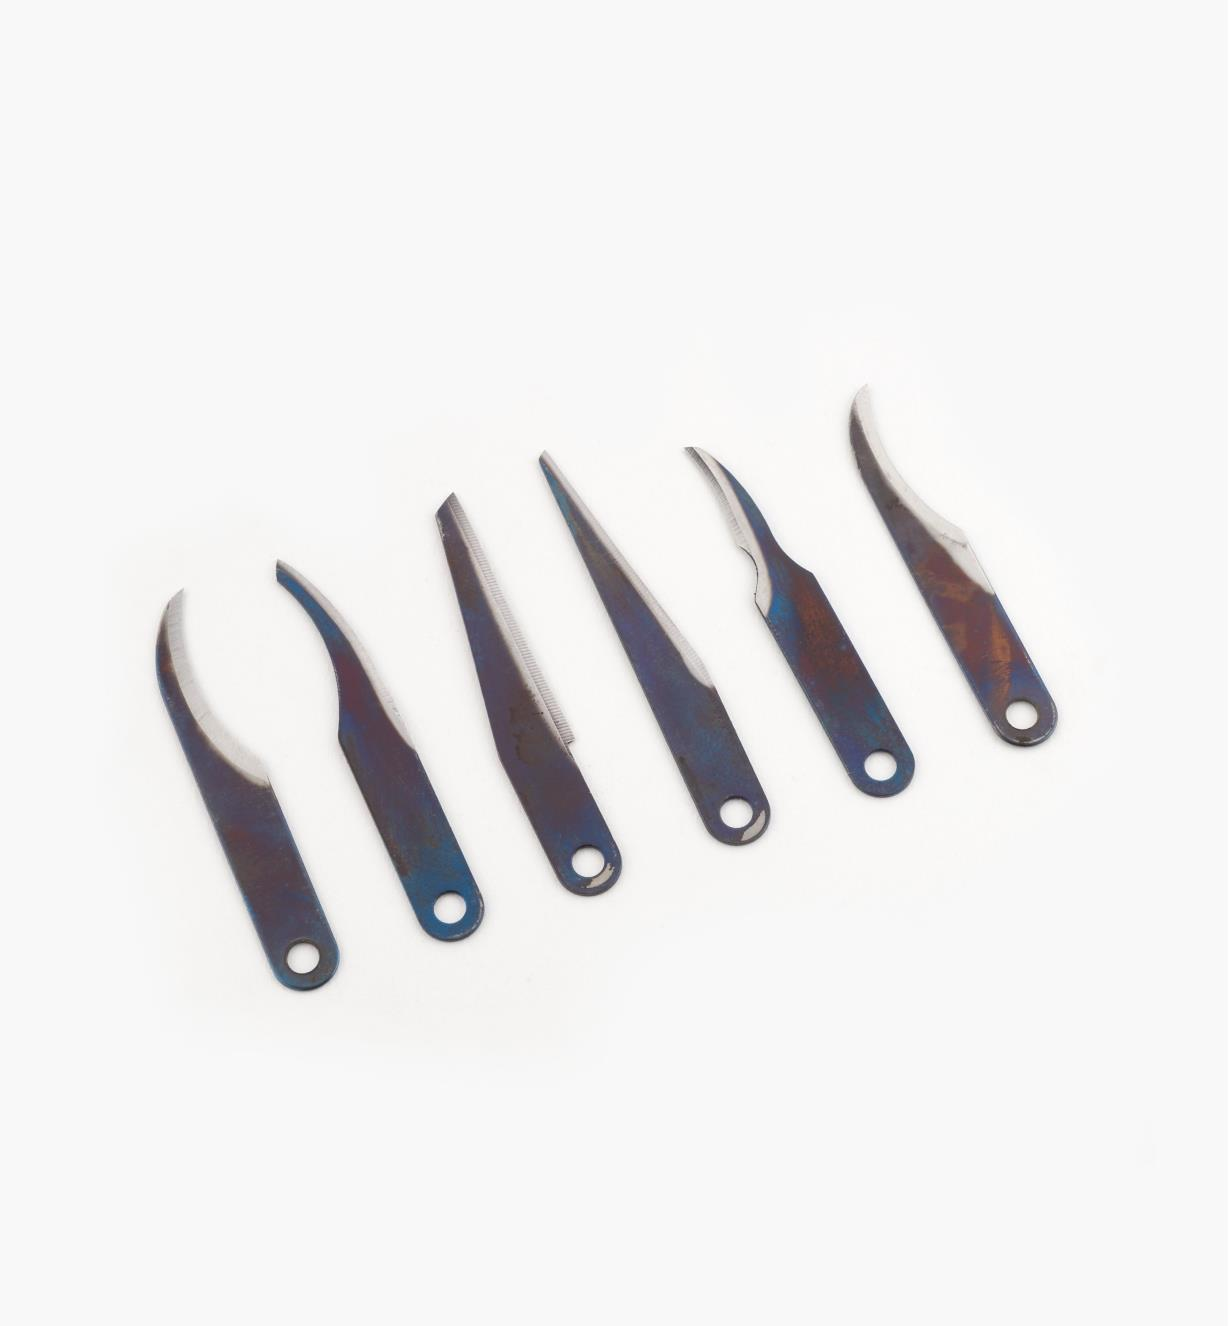 81D0110 - Set of 6 Warren Knife Blades (1 of each)